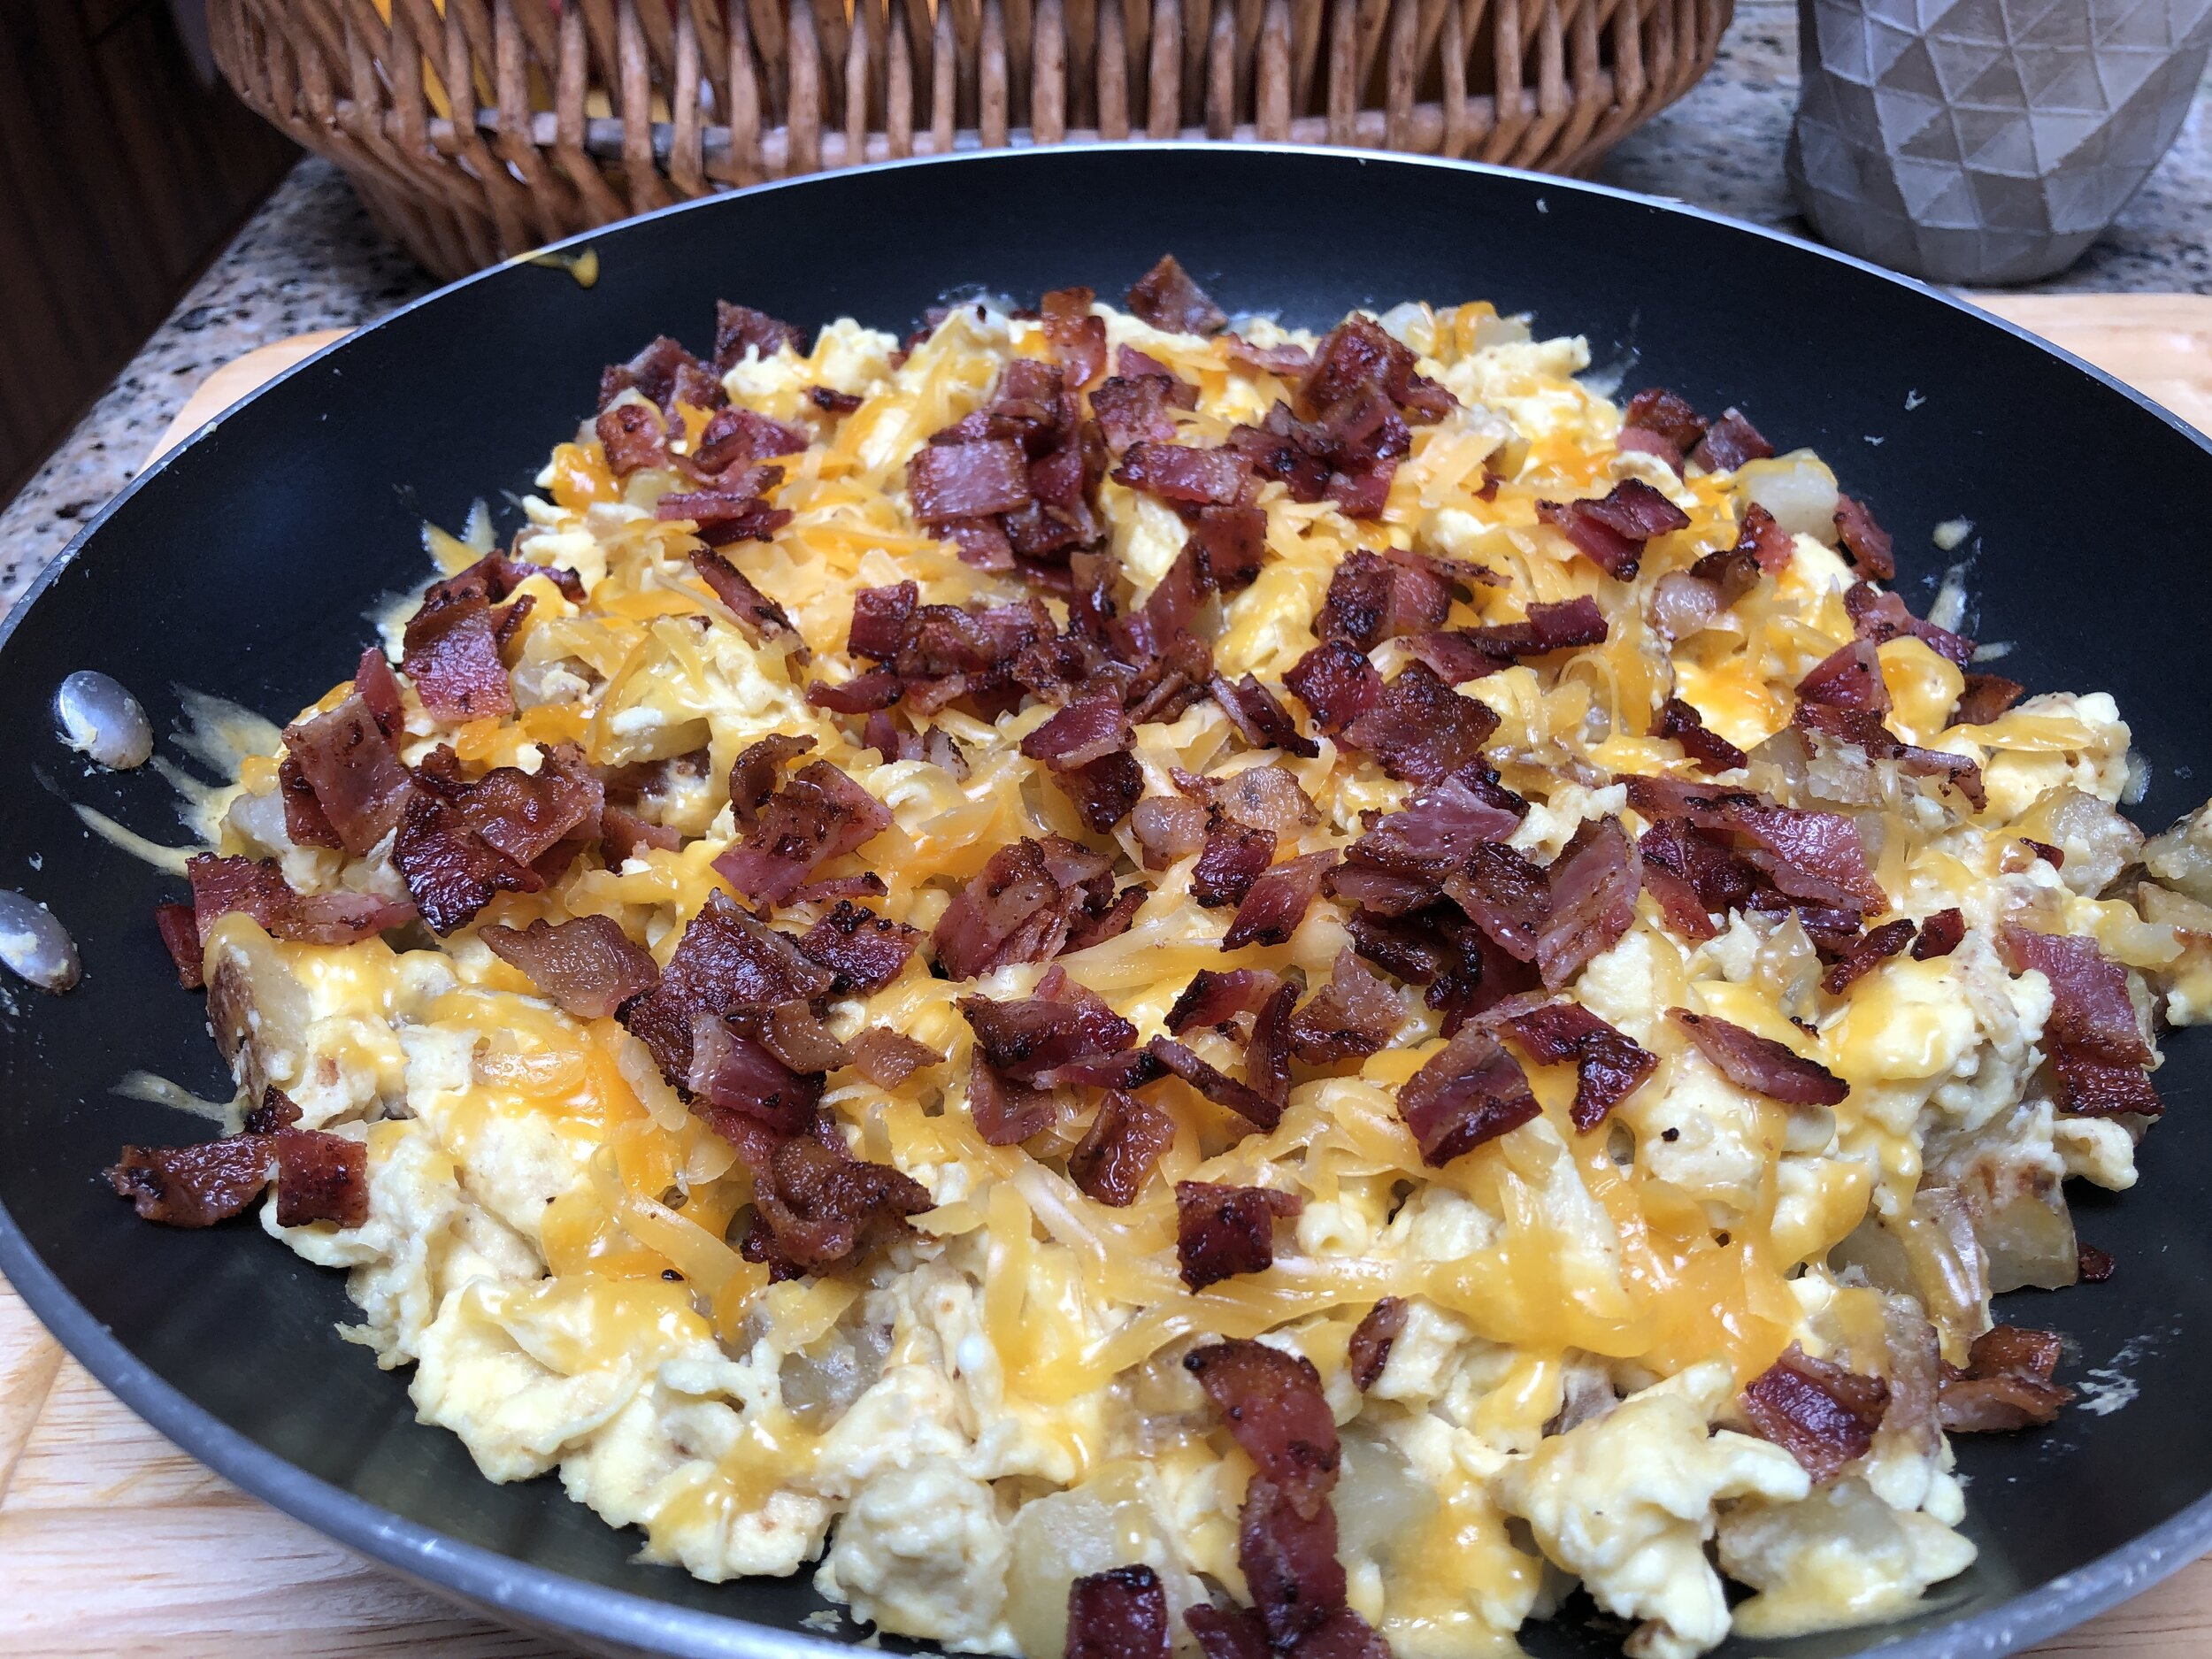 Melting the cheese of the Loaded Potato Breakfast Skillet